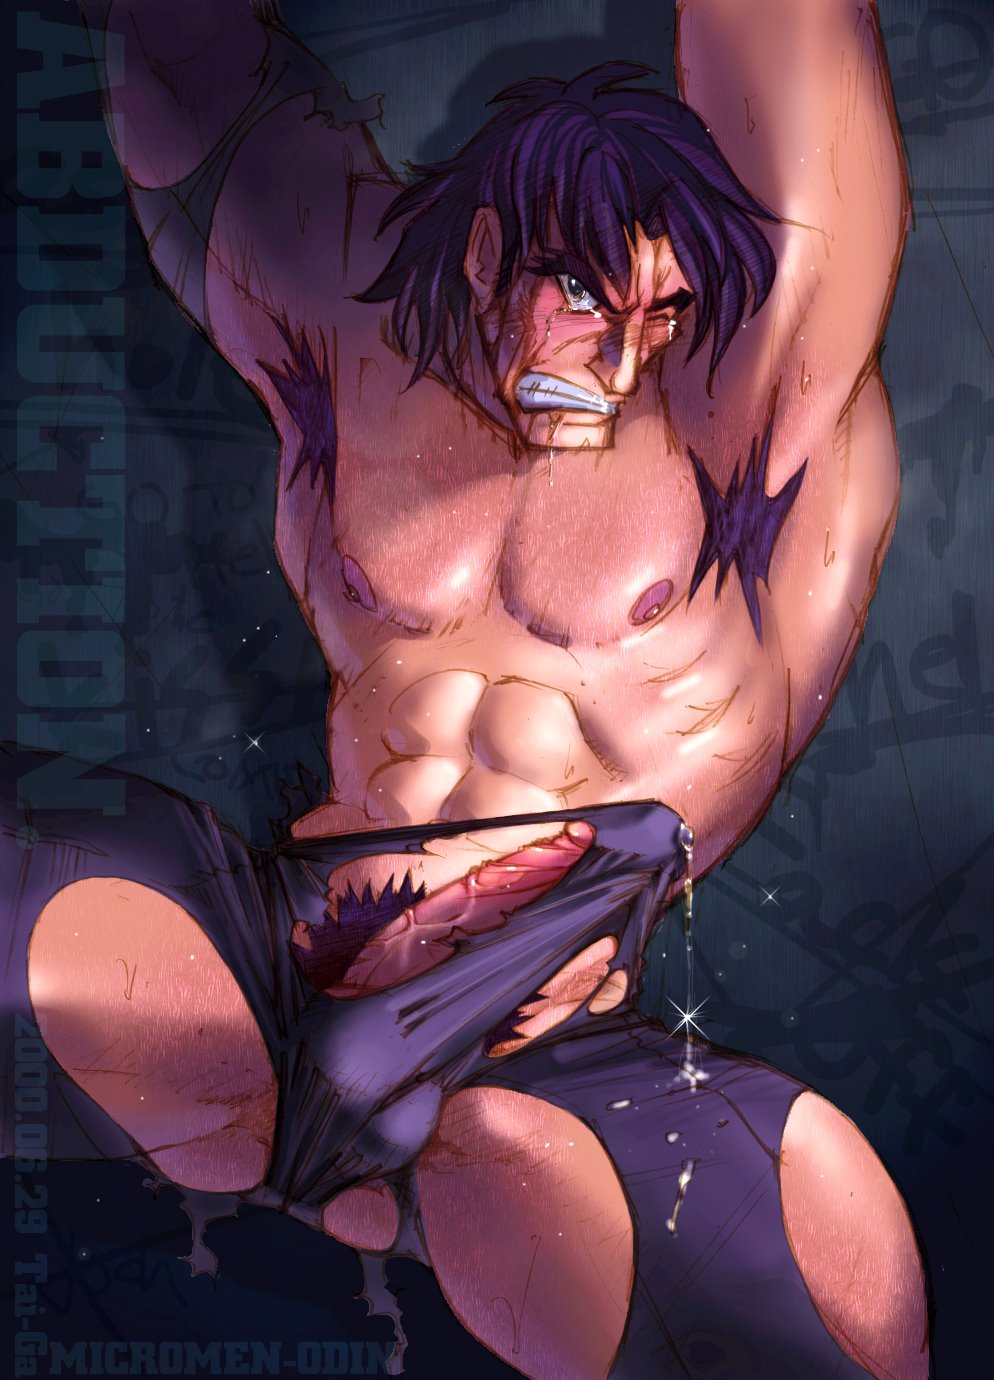 Animated 3d muscle man fucks girl anime photos